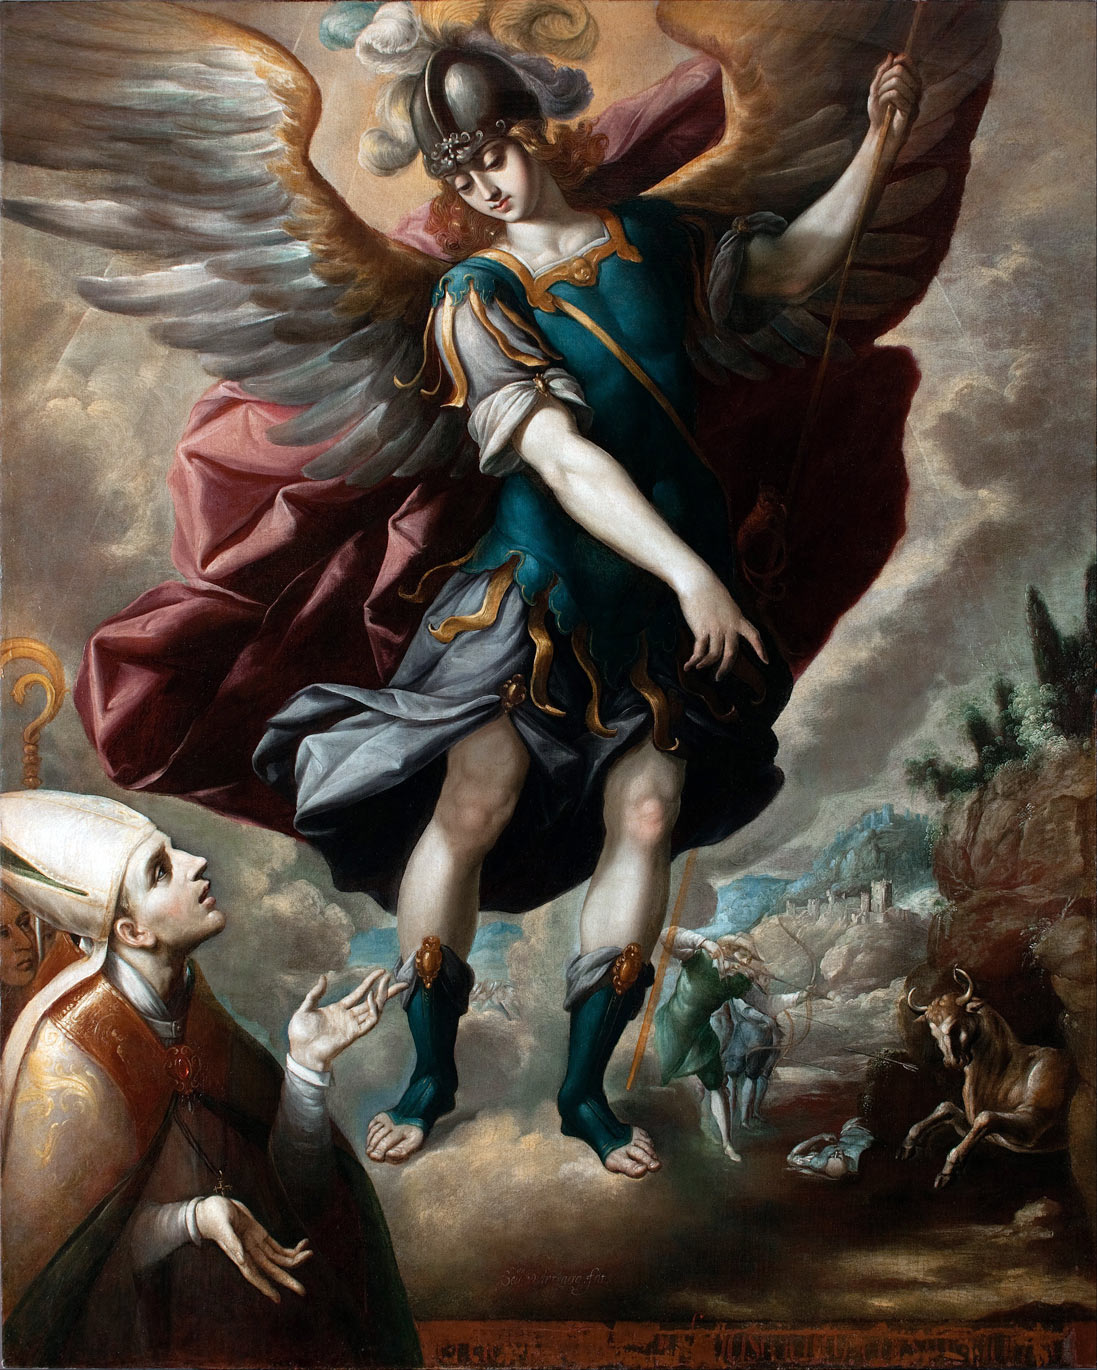 Sebastian_Lopez_de_Arteaga_-_Saint_Michael_and_the_Bull-(DAM)